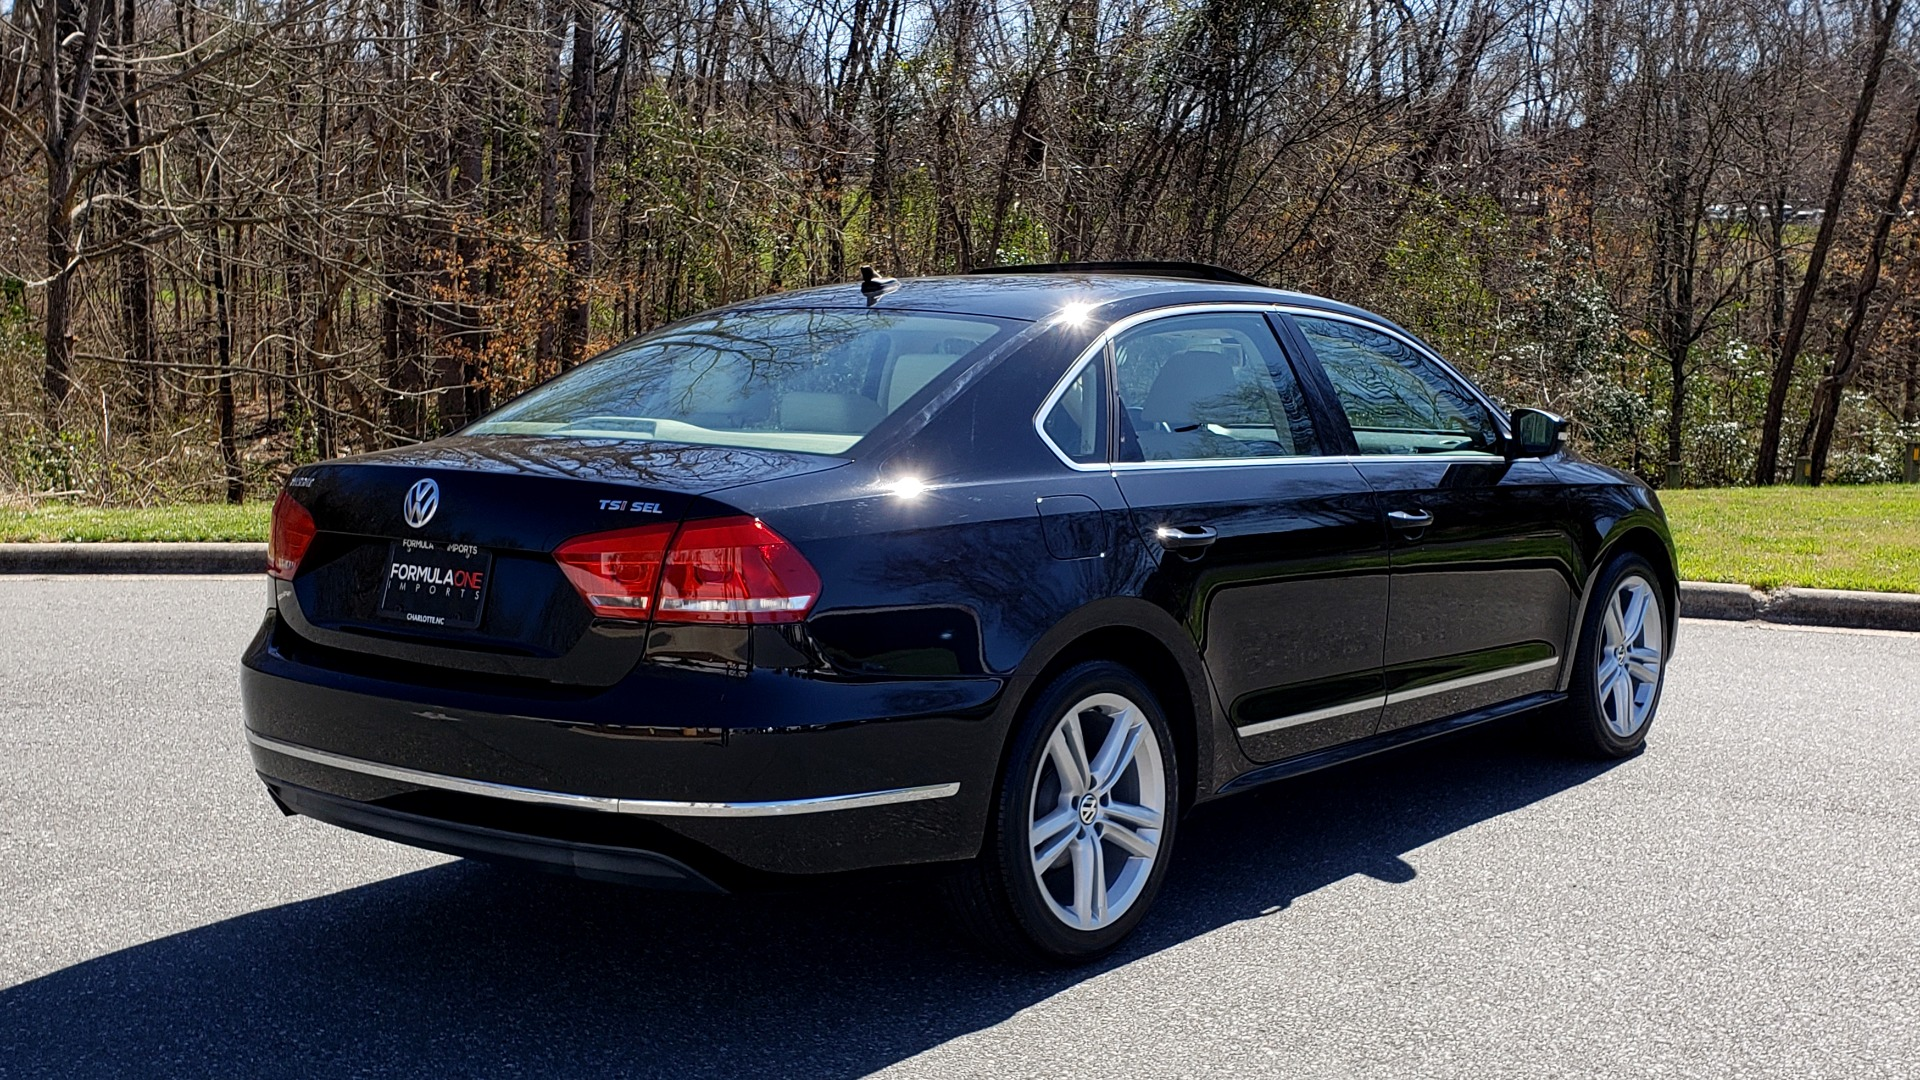 Used 2014 Volkswagen PASSAT SEL PREMIUM / NAV / SUNROOF / REARVIEW / 6-SPD AUTO for sale Sold at Formula Imports in Charlotte NC 28227 6